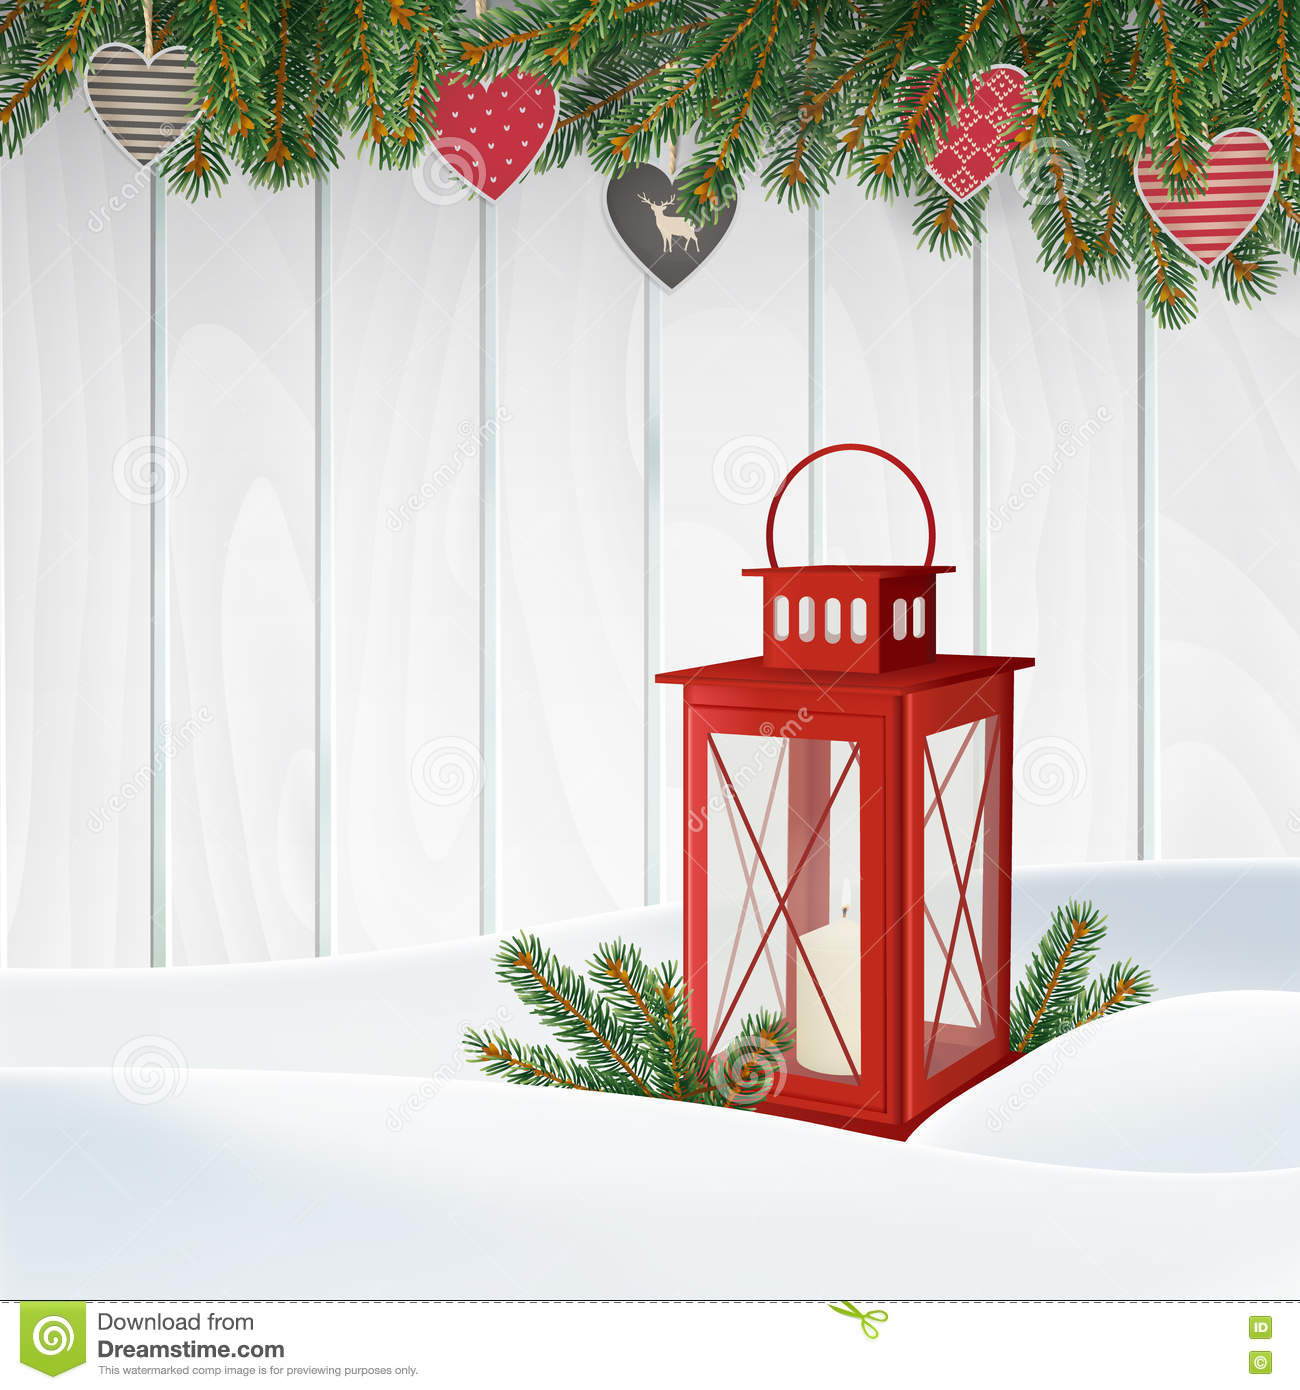 Christmas greeting card, invitation. Winter scene, red lantern with candle, Christmas tree branches, twigs. Wooden background.